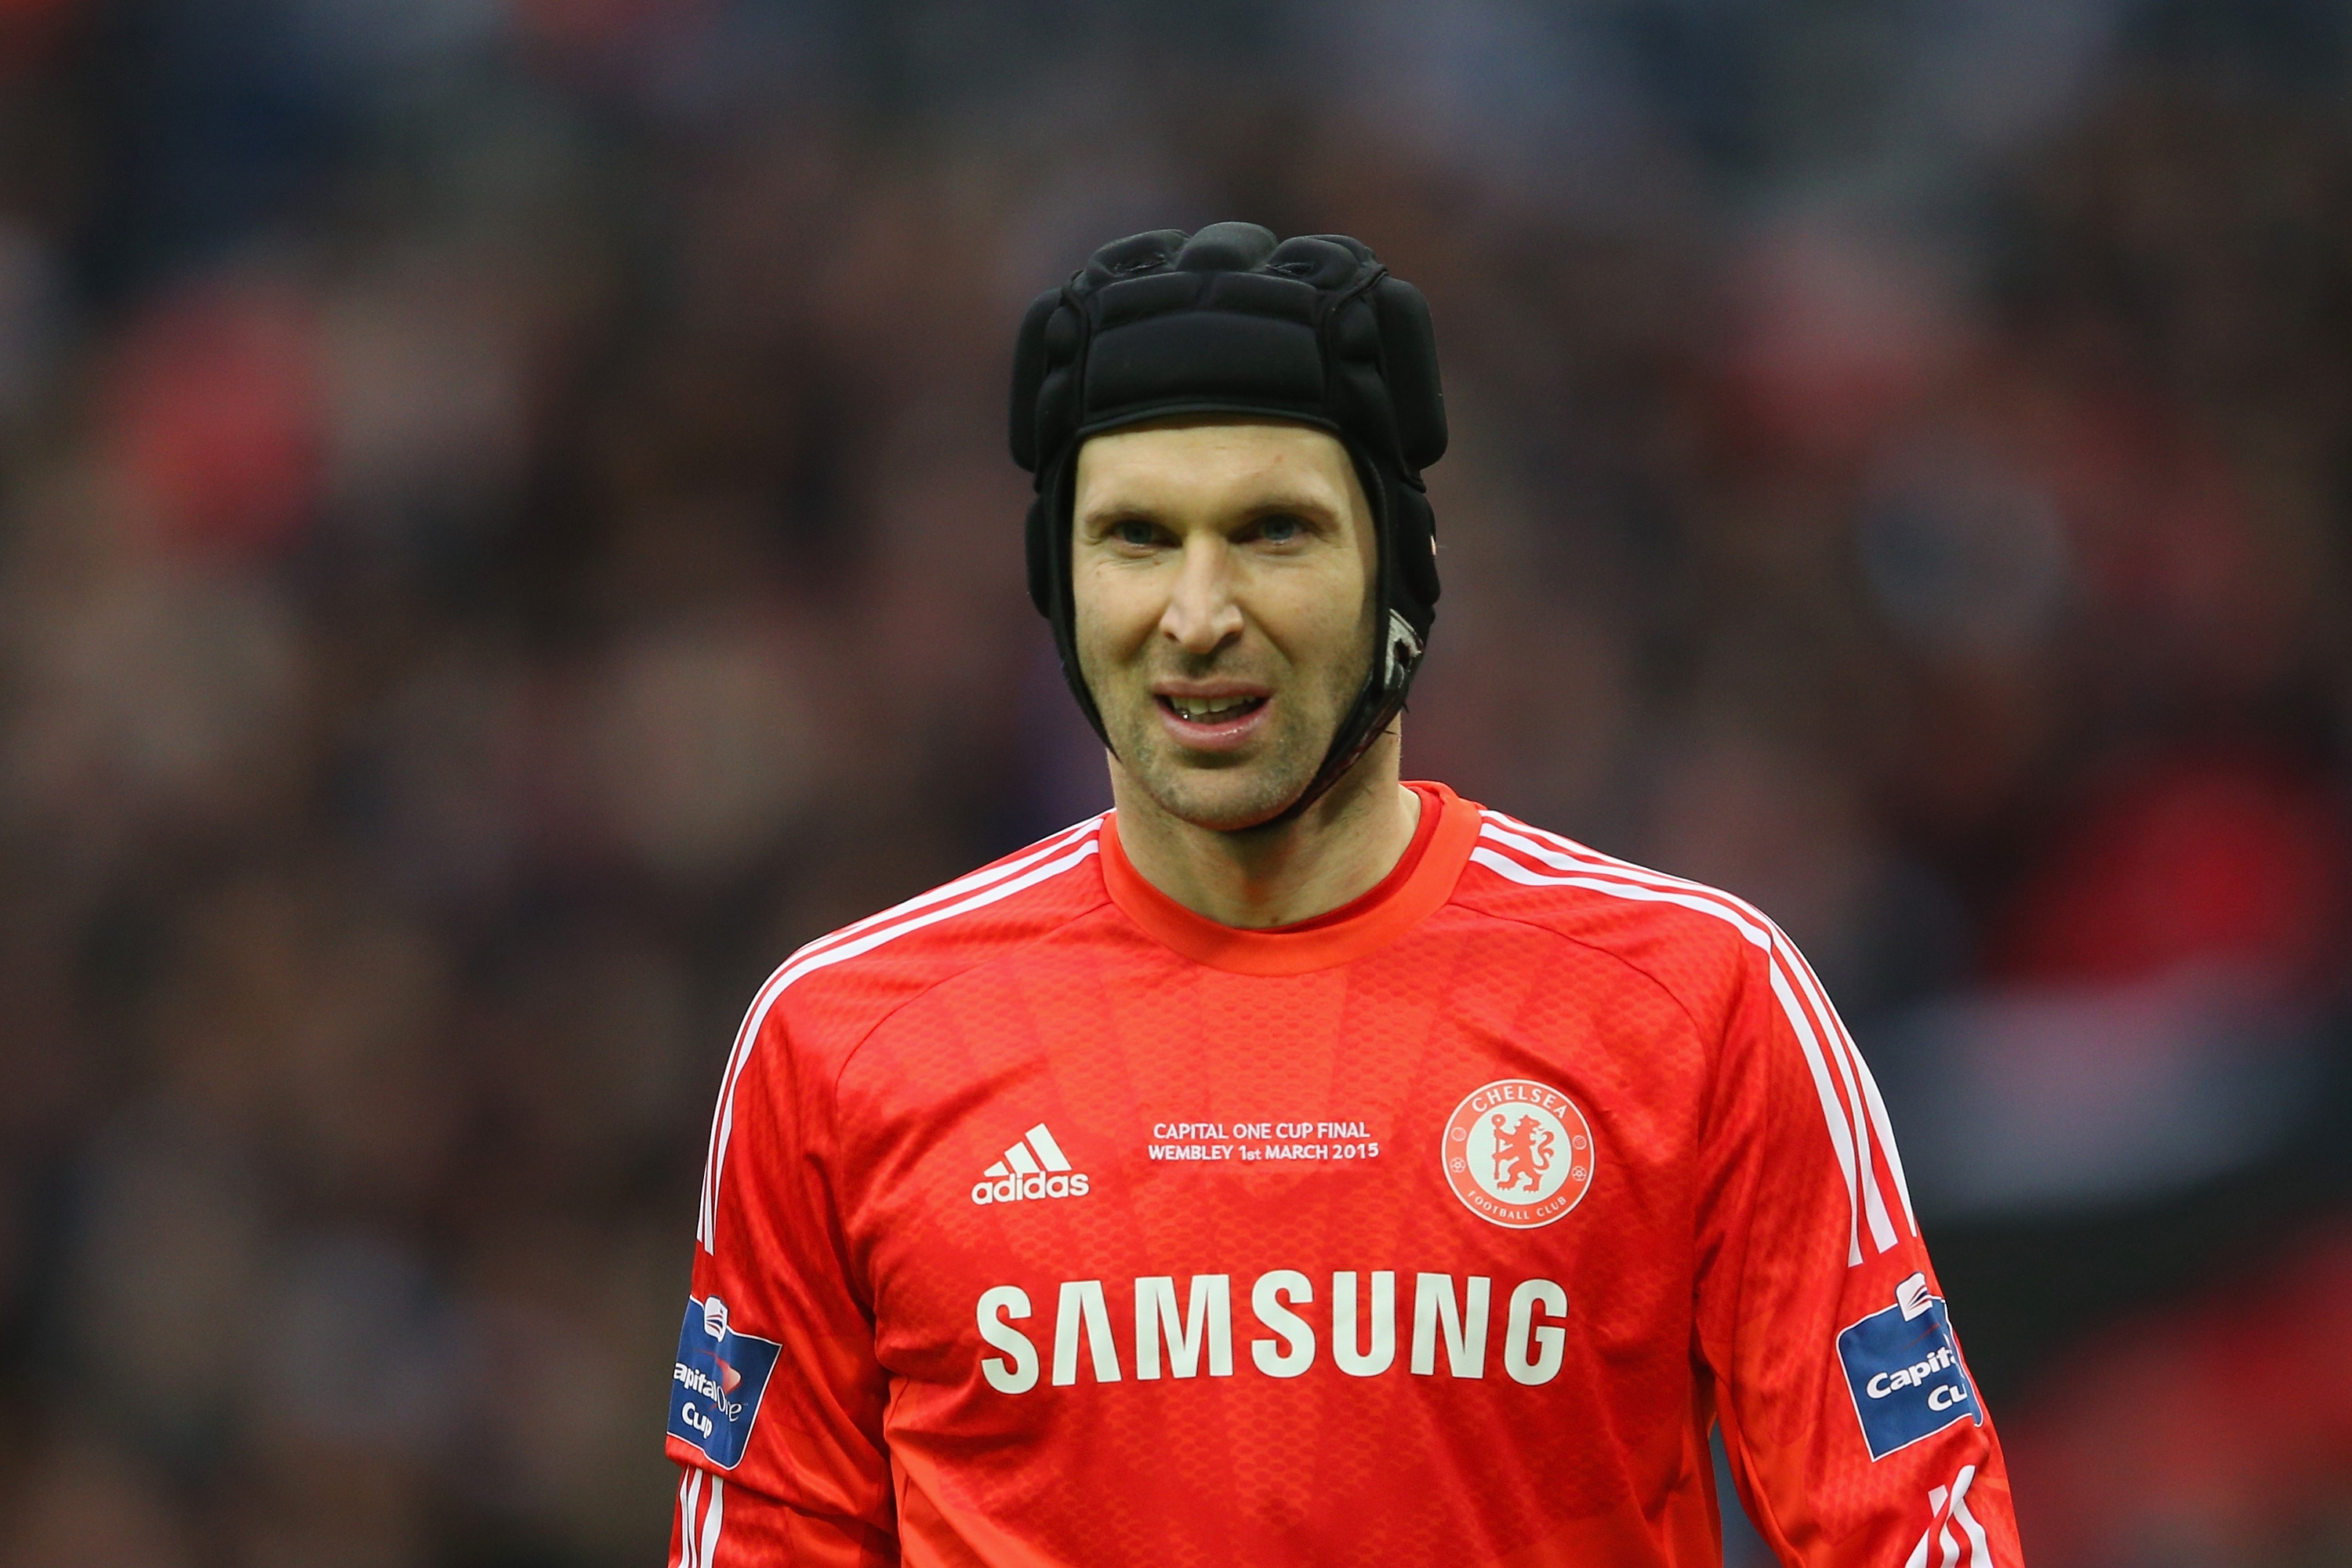 Petr Cech Wallpapers Images Photos Pictures Backgrounds